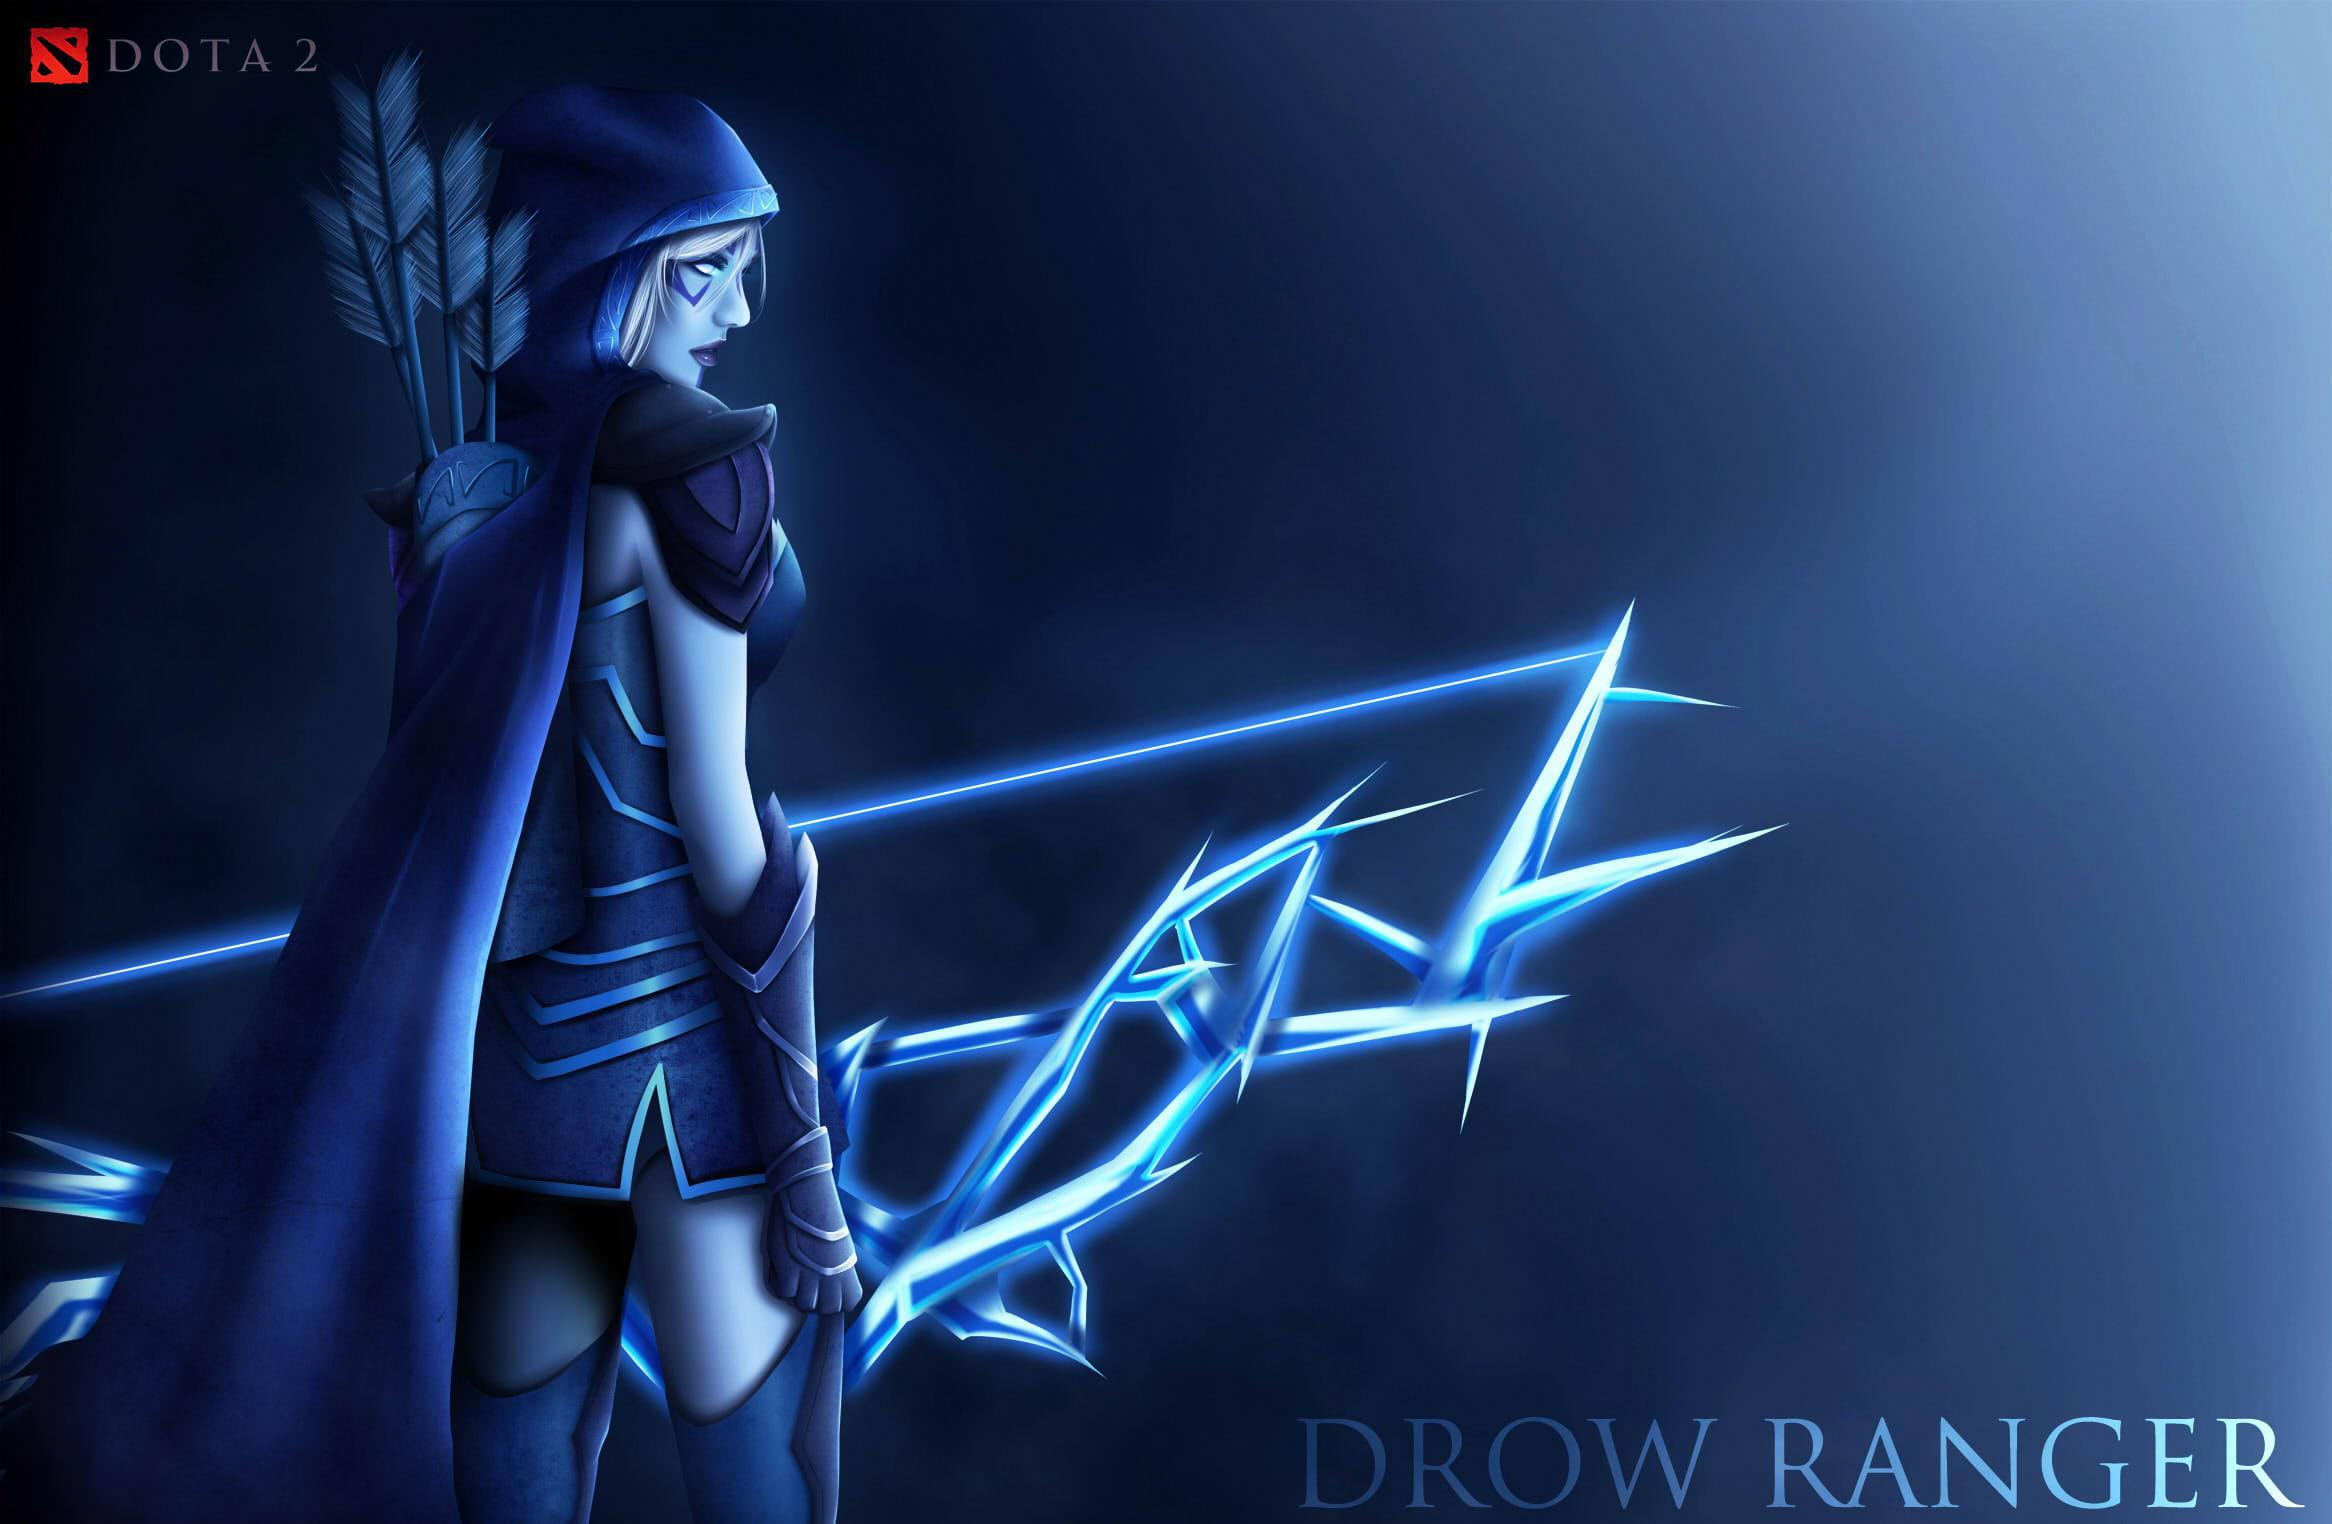 Dota Games Drow Ranger Hd Wallpaper Wallpapers